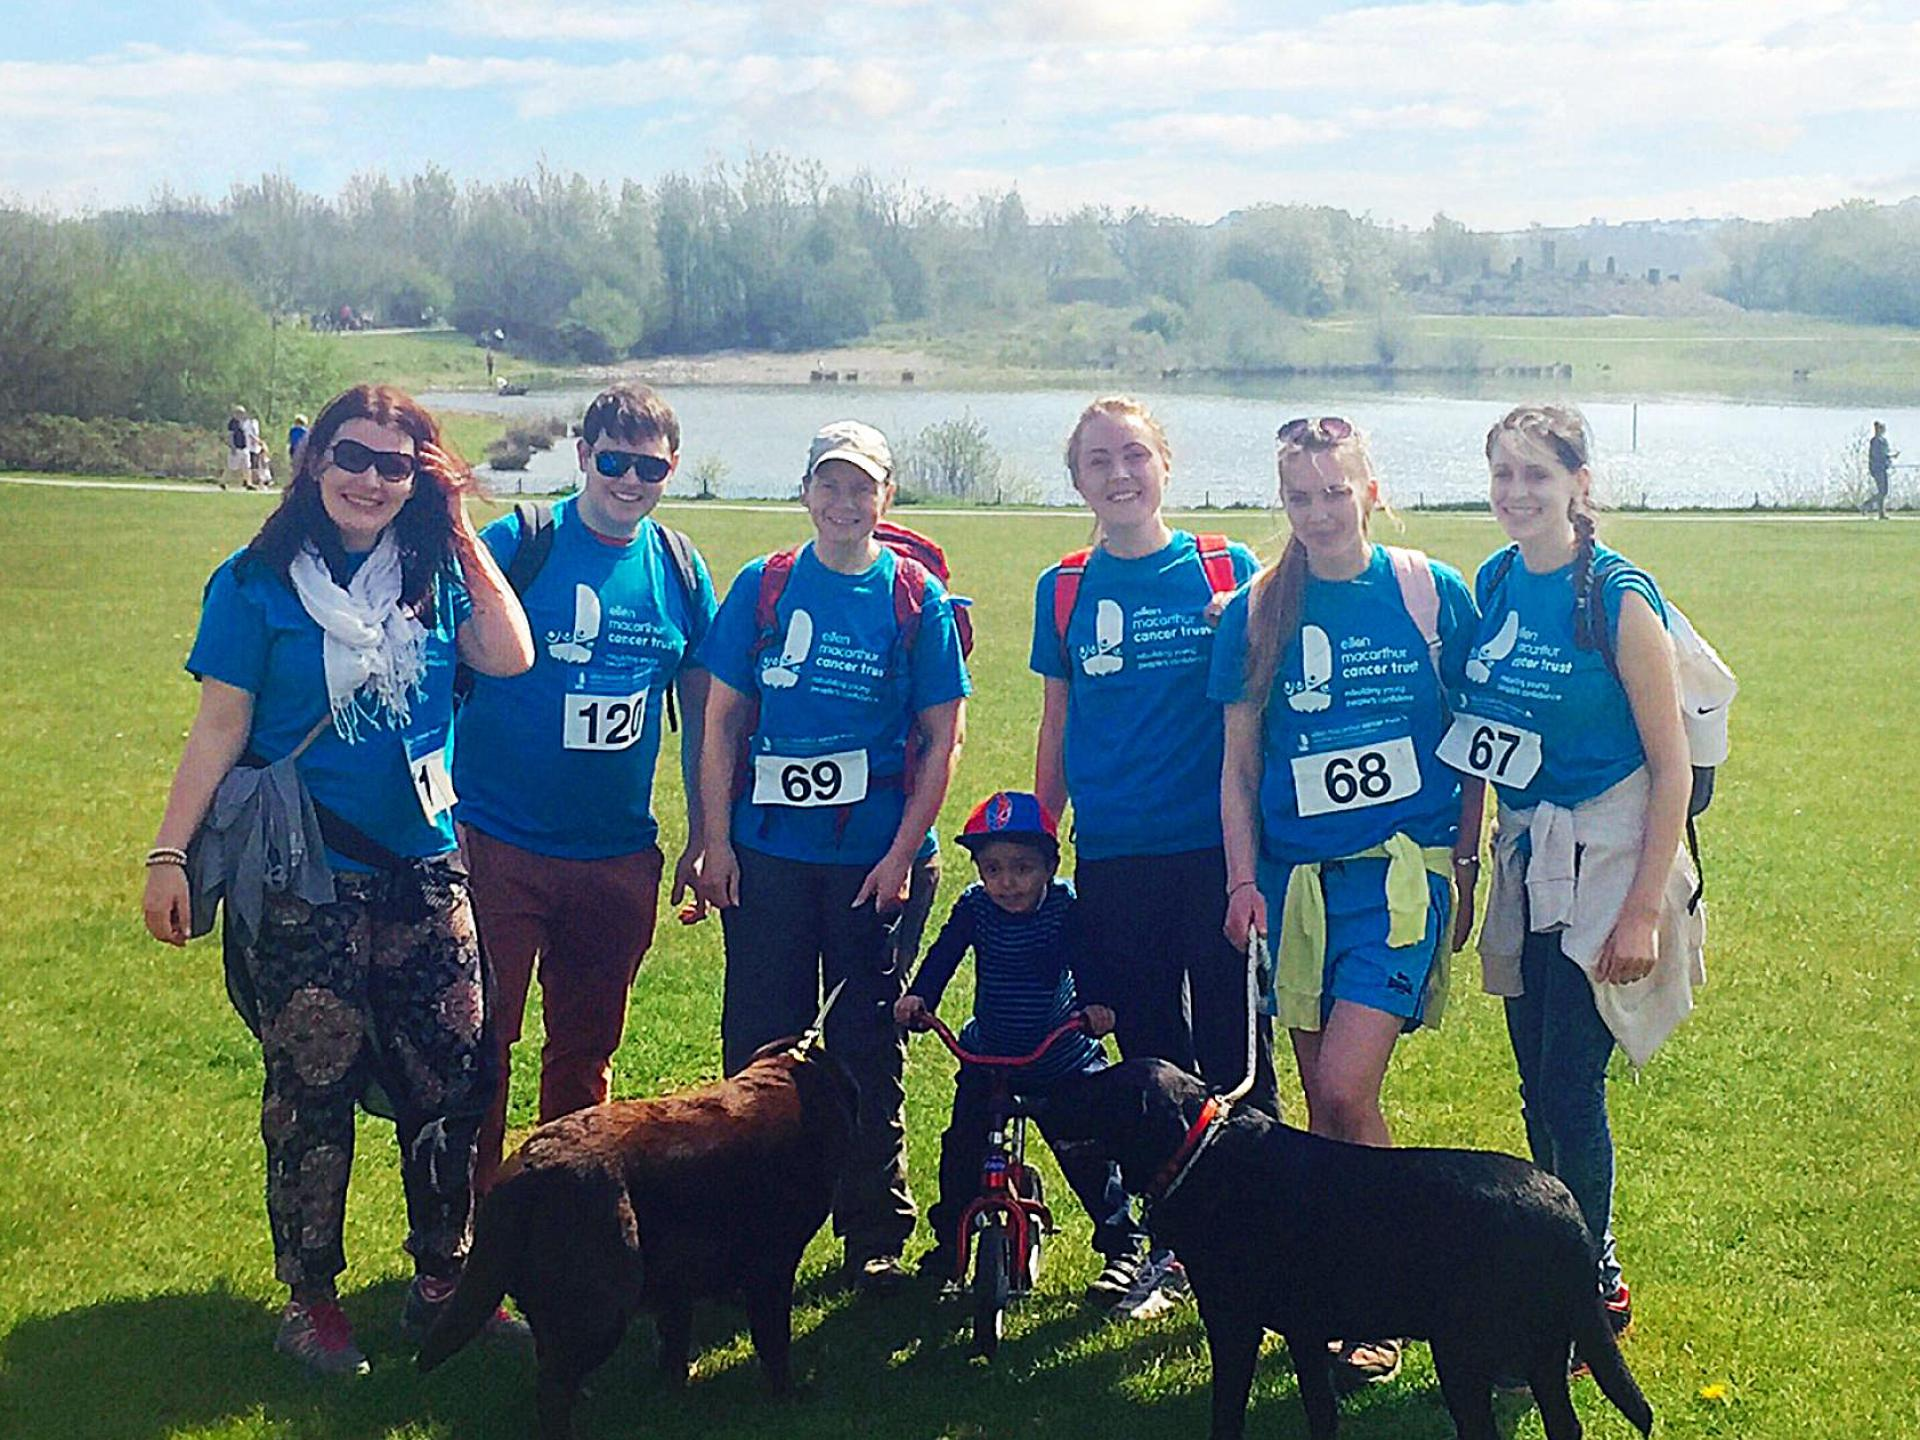 The Contours Charity Team gathered in blue t-shirts for the Great British Dog Walk